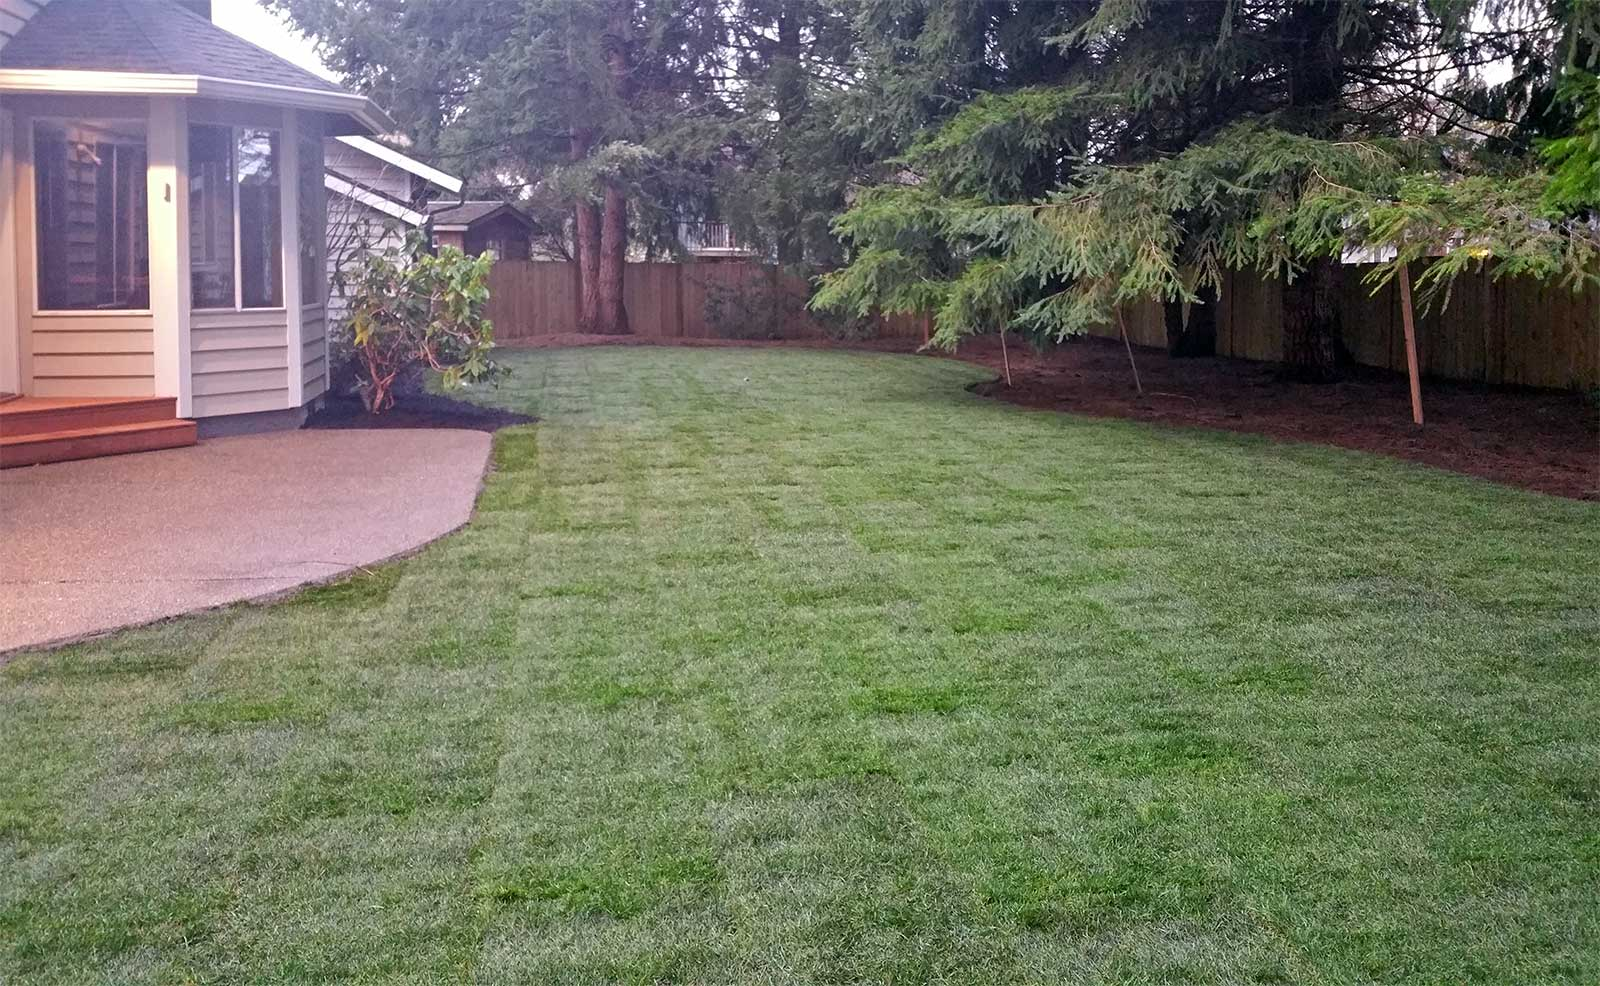 Lawn Replacement in Olympia